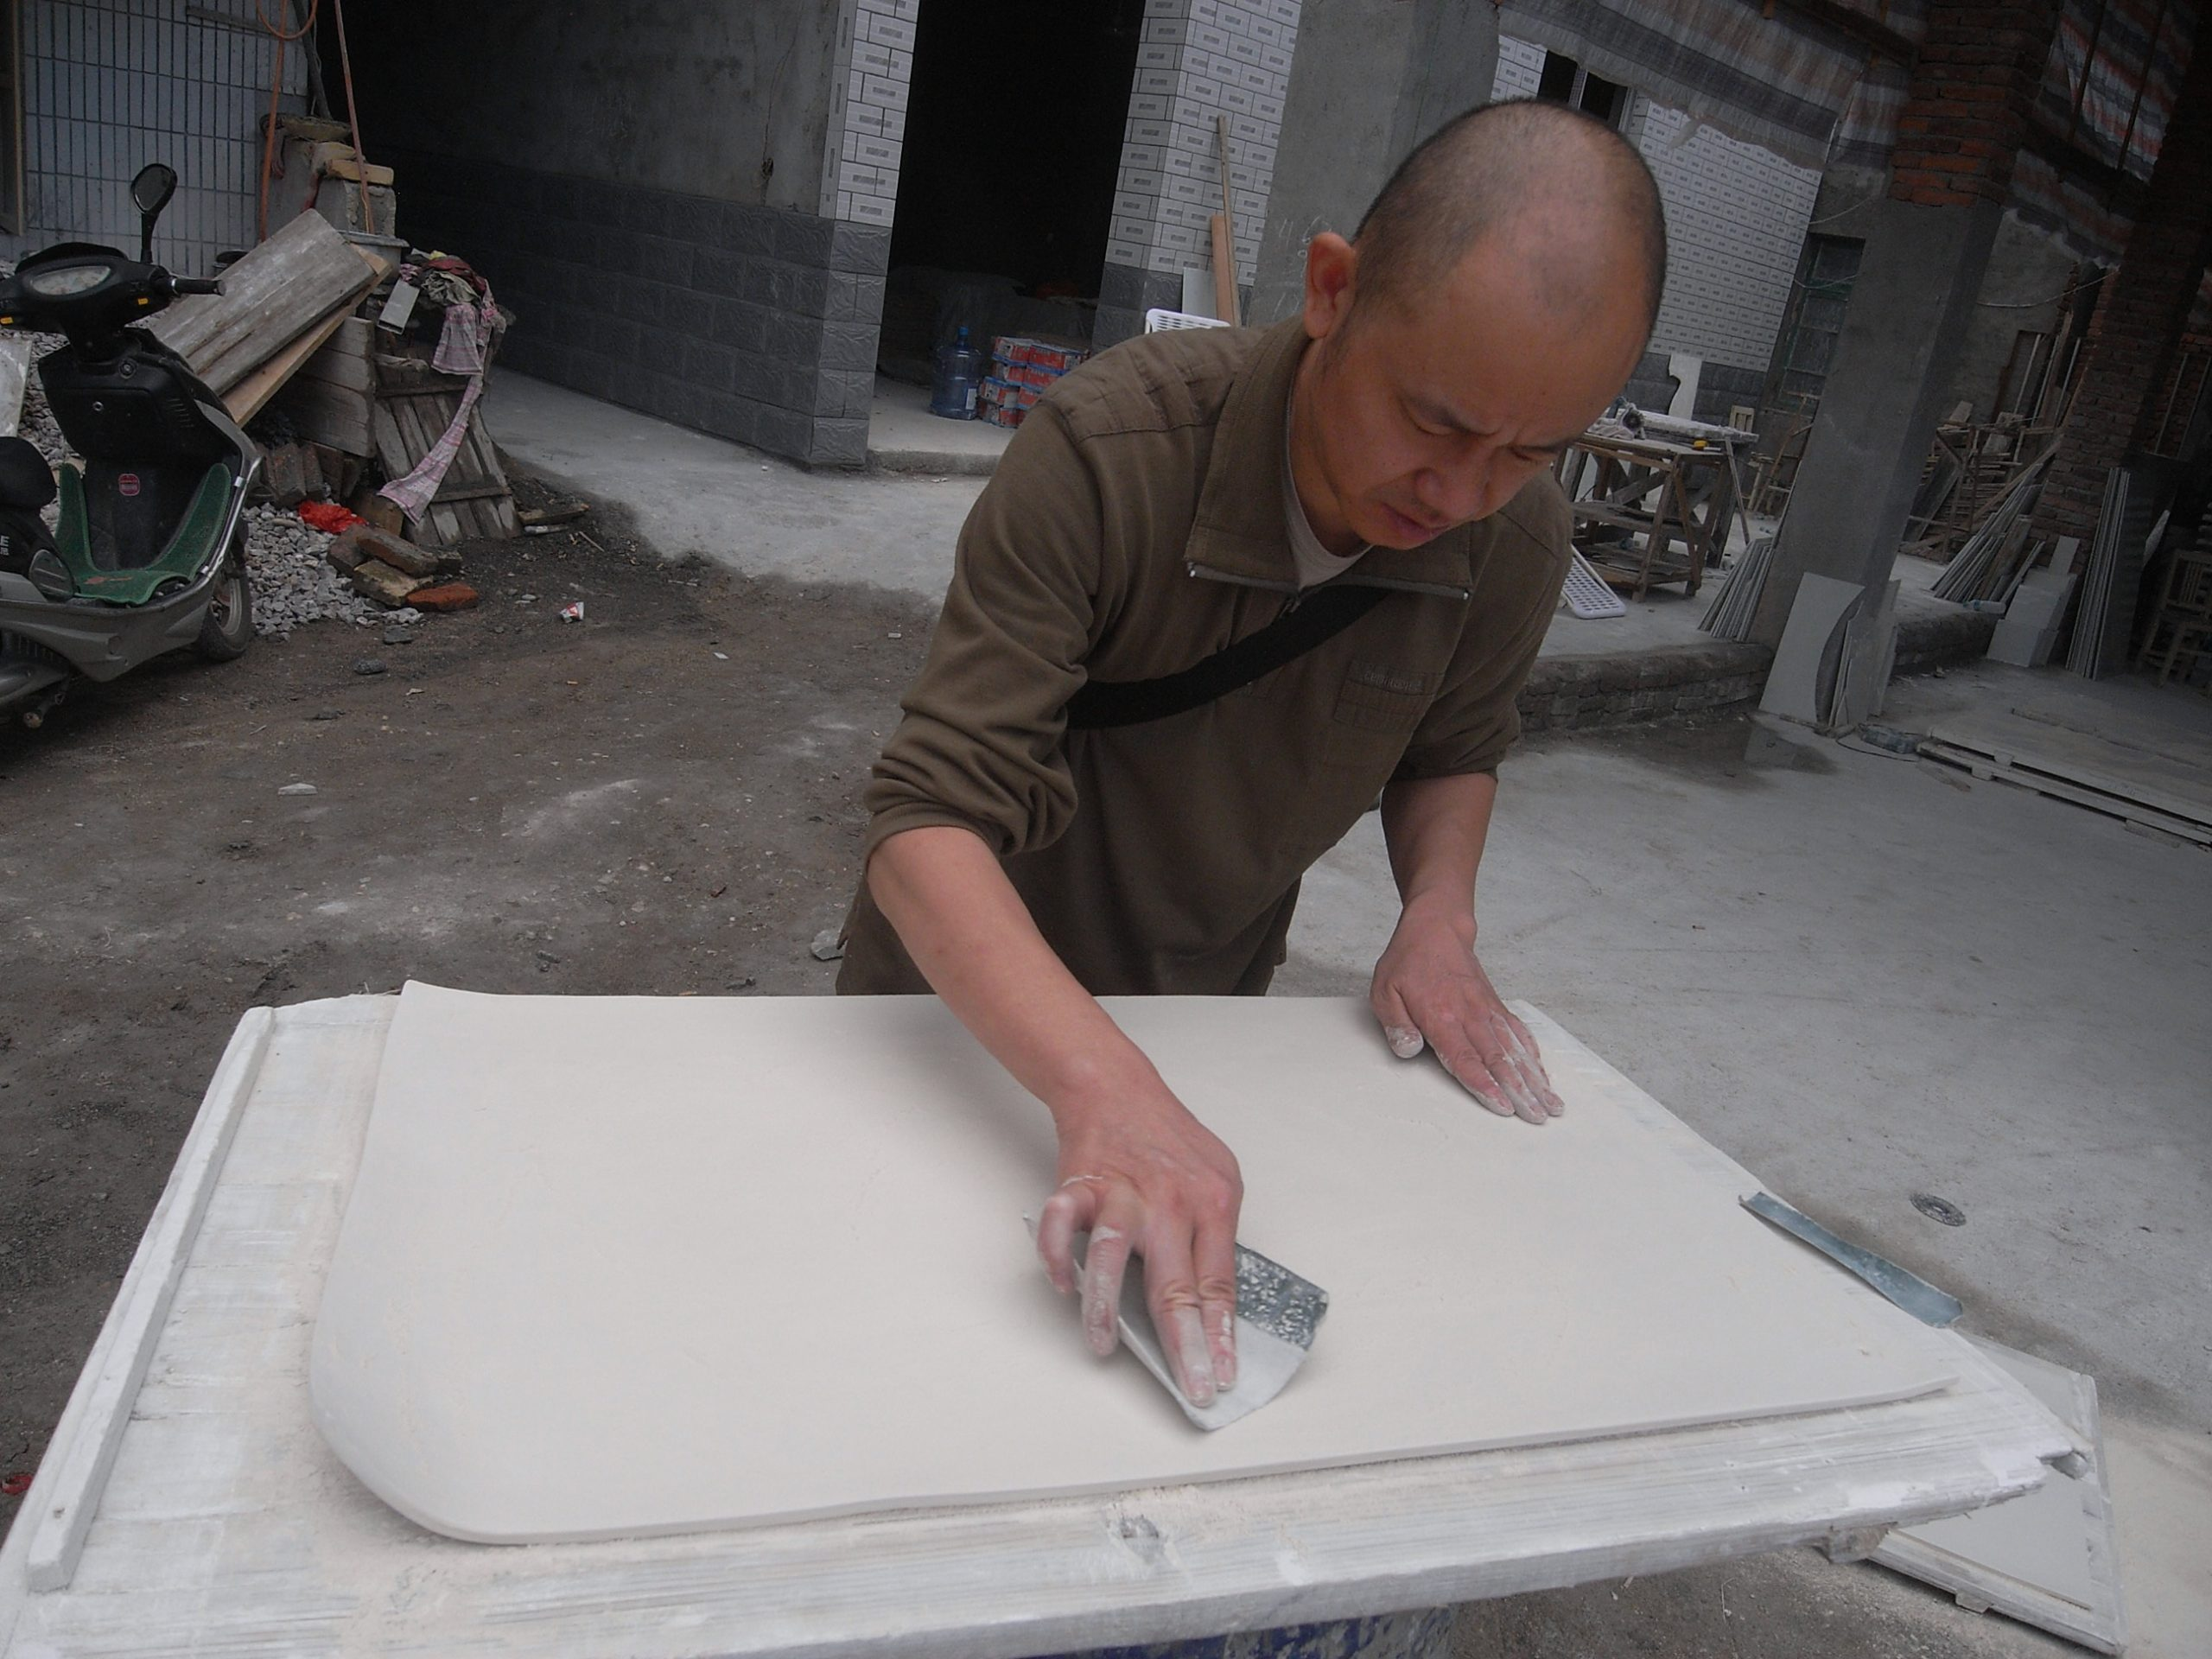 Liu Jianhua smoothing out the clay surface of a work. Photo courtesy of the artist.